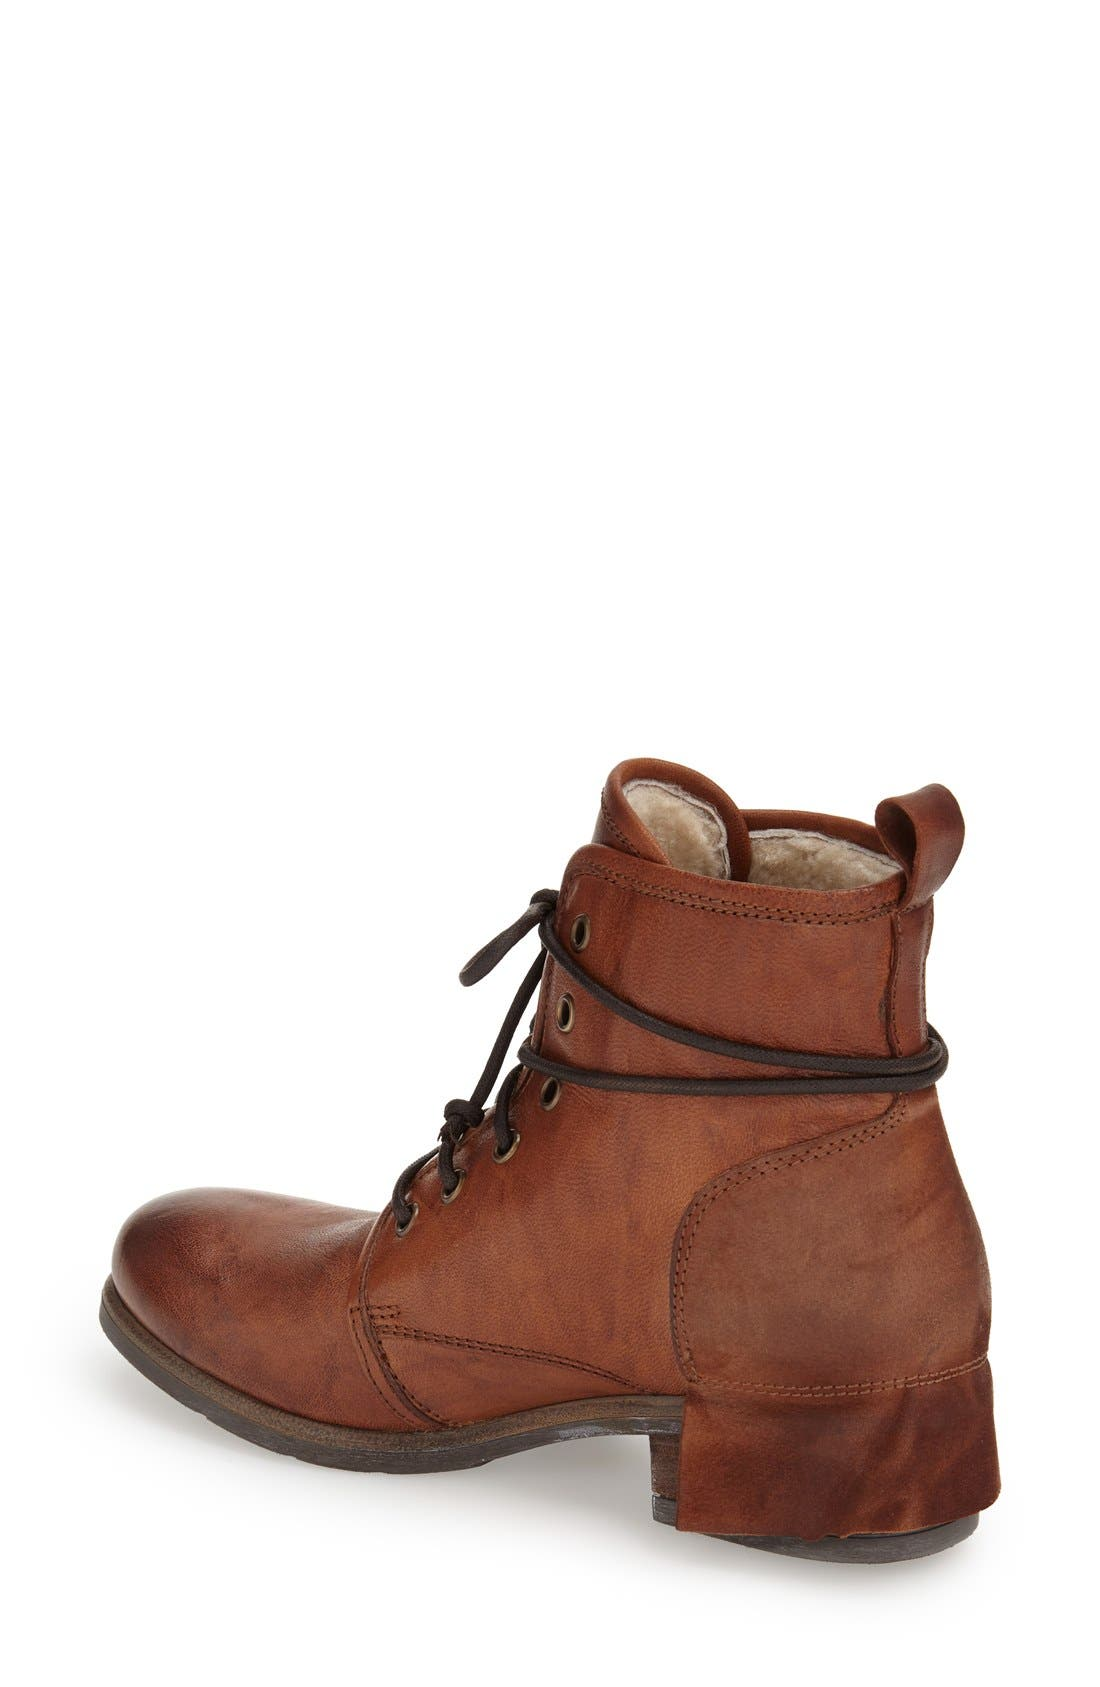 Alternate Image 2  - UGG® Collection 'Tesa' Lace-Up Ankle Boot (Women)